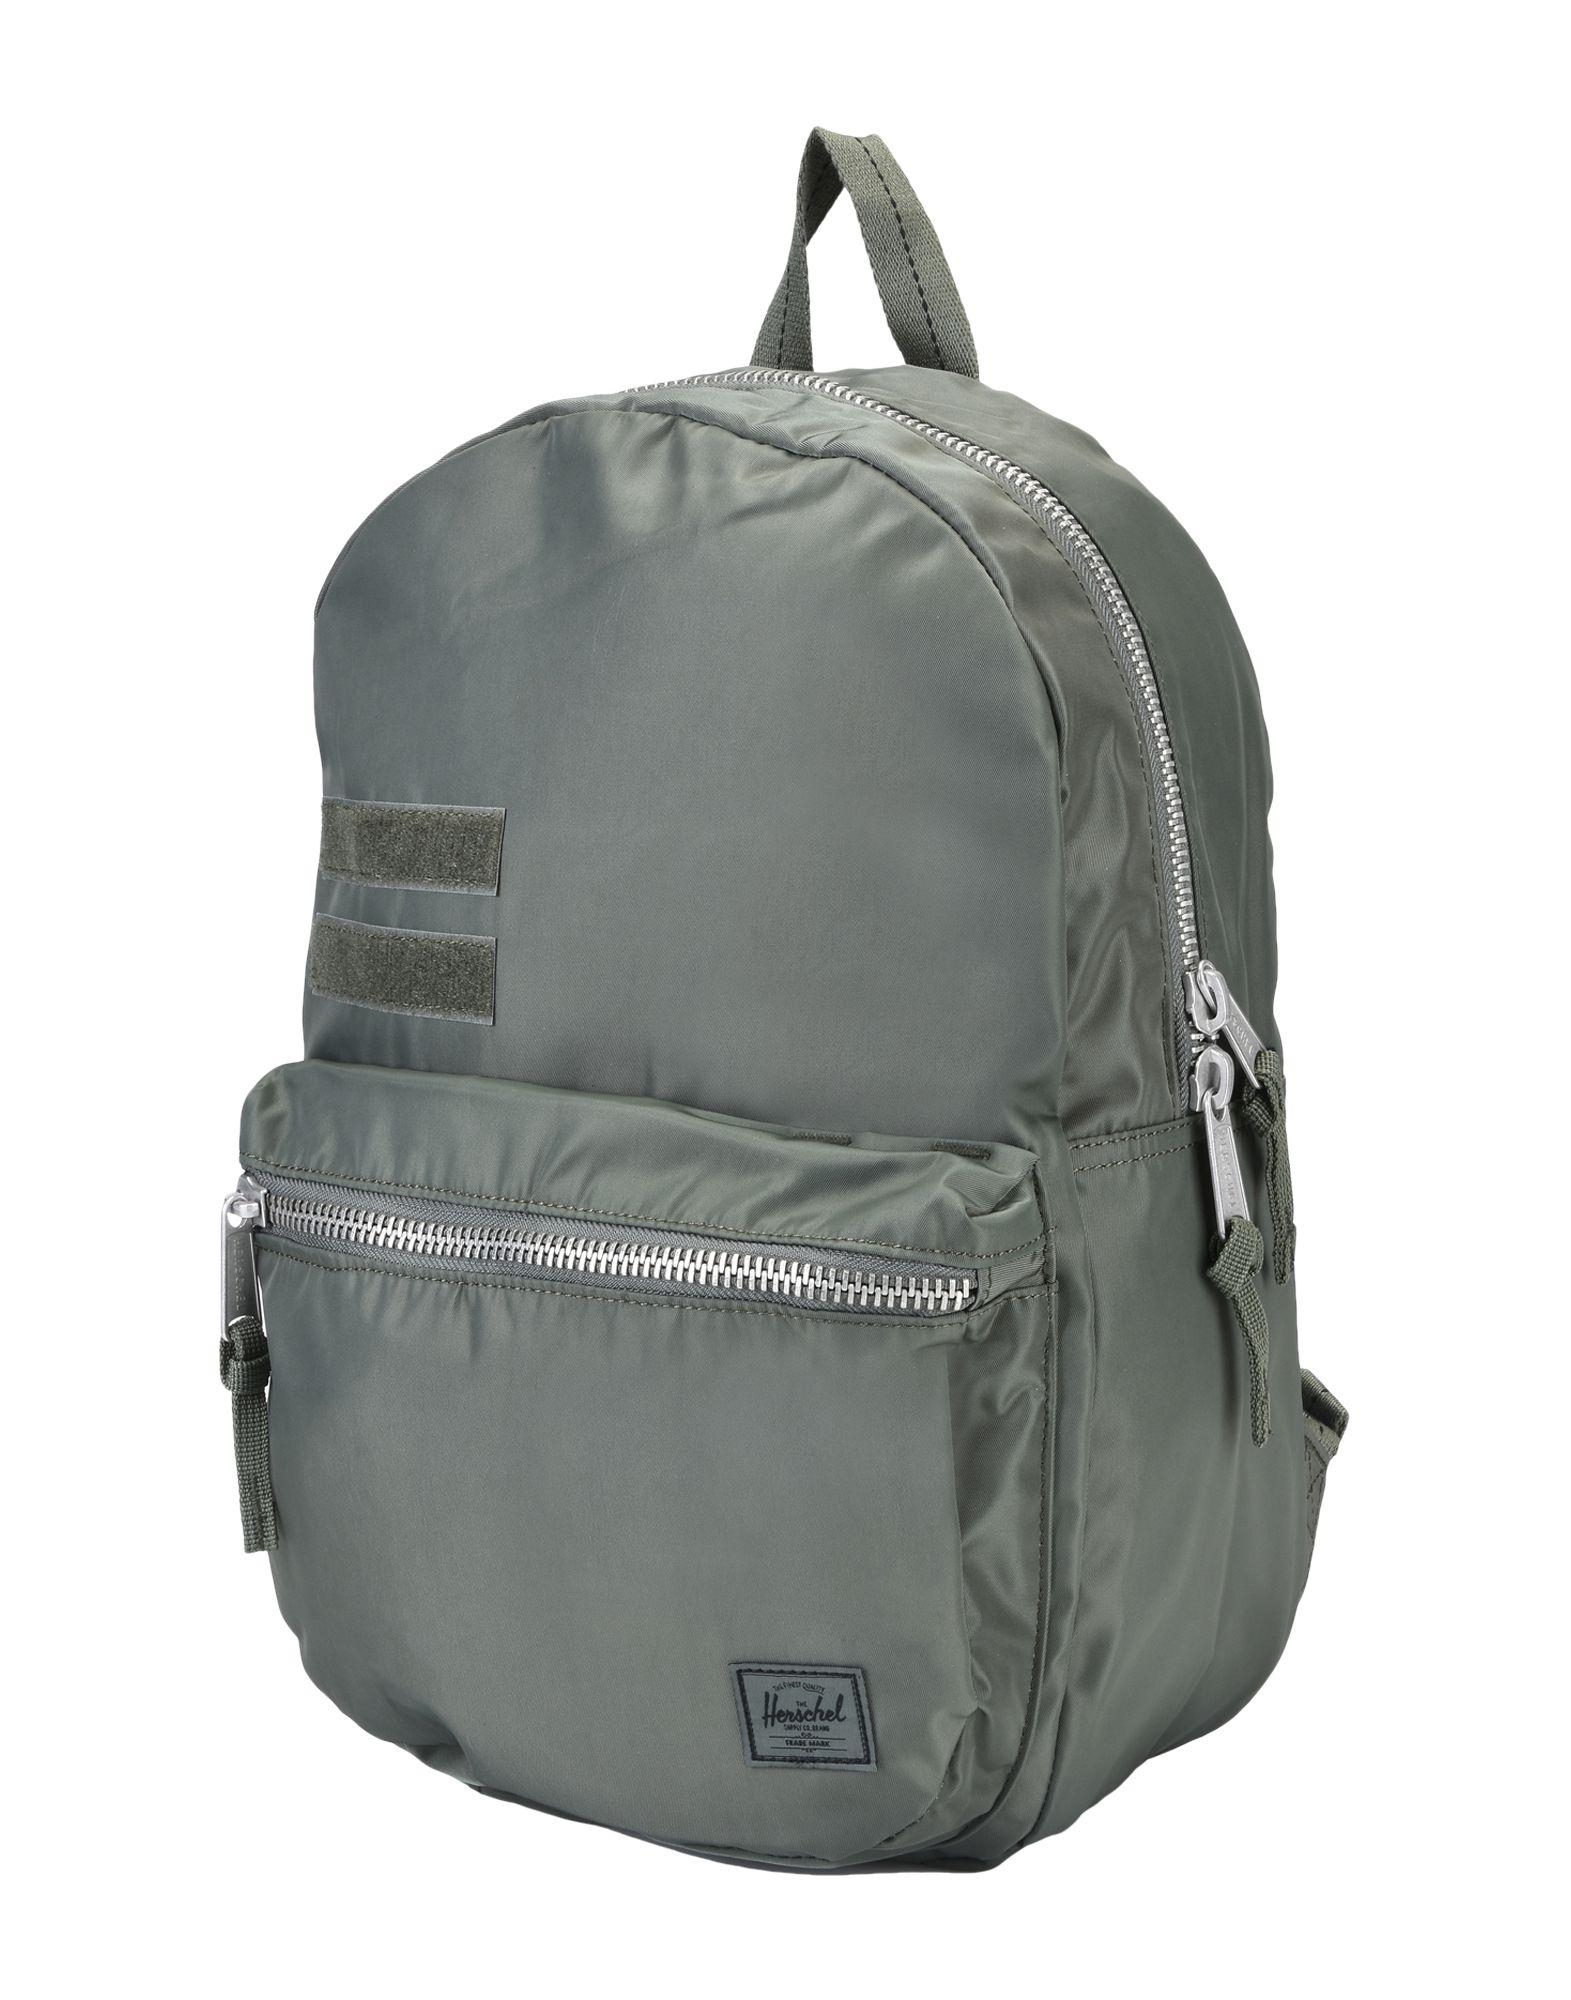 df3f43bab6f Herschel Supply Co. Backpacks   Fanny Packs In Military Green